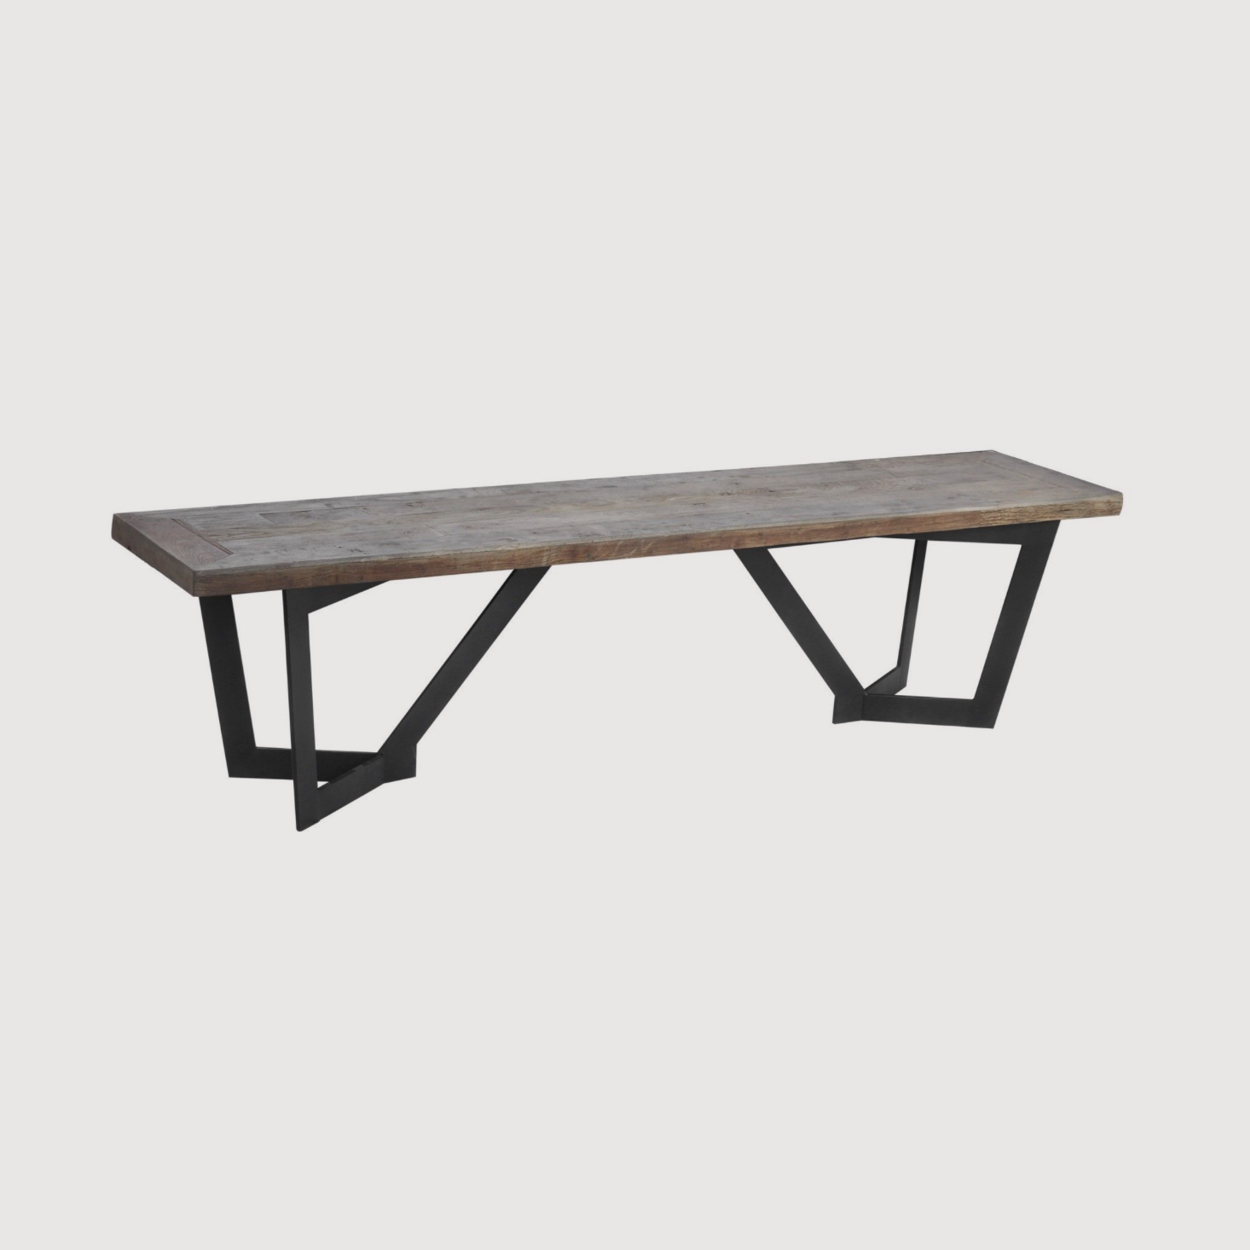 Glenmore Recycled Elm And Iron Rectangular Bench gallery image